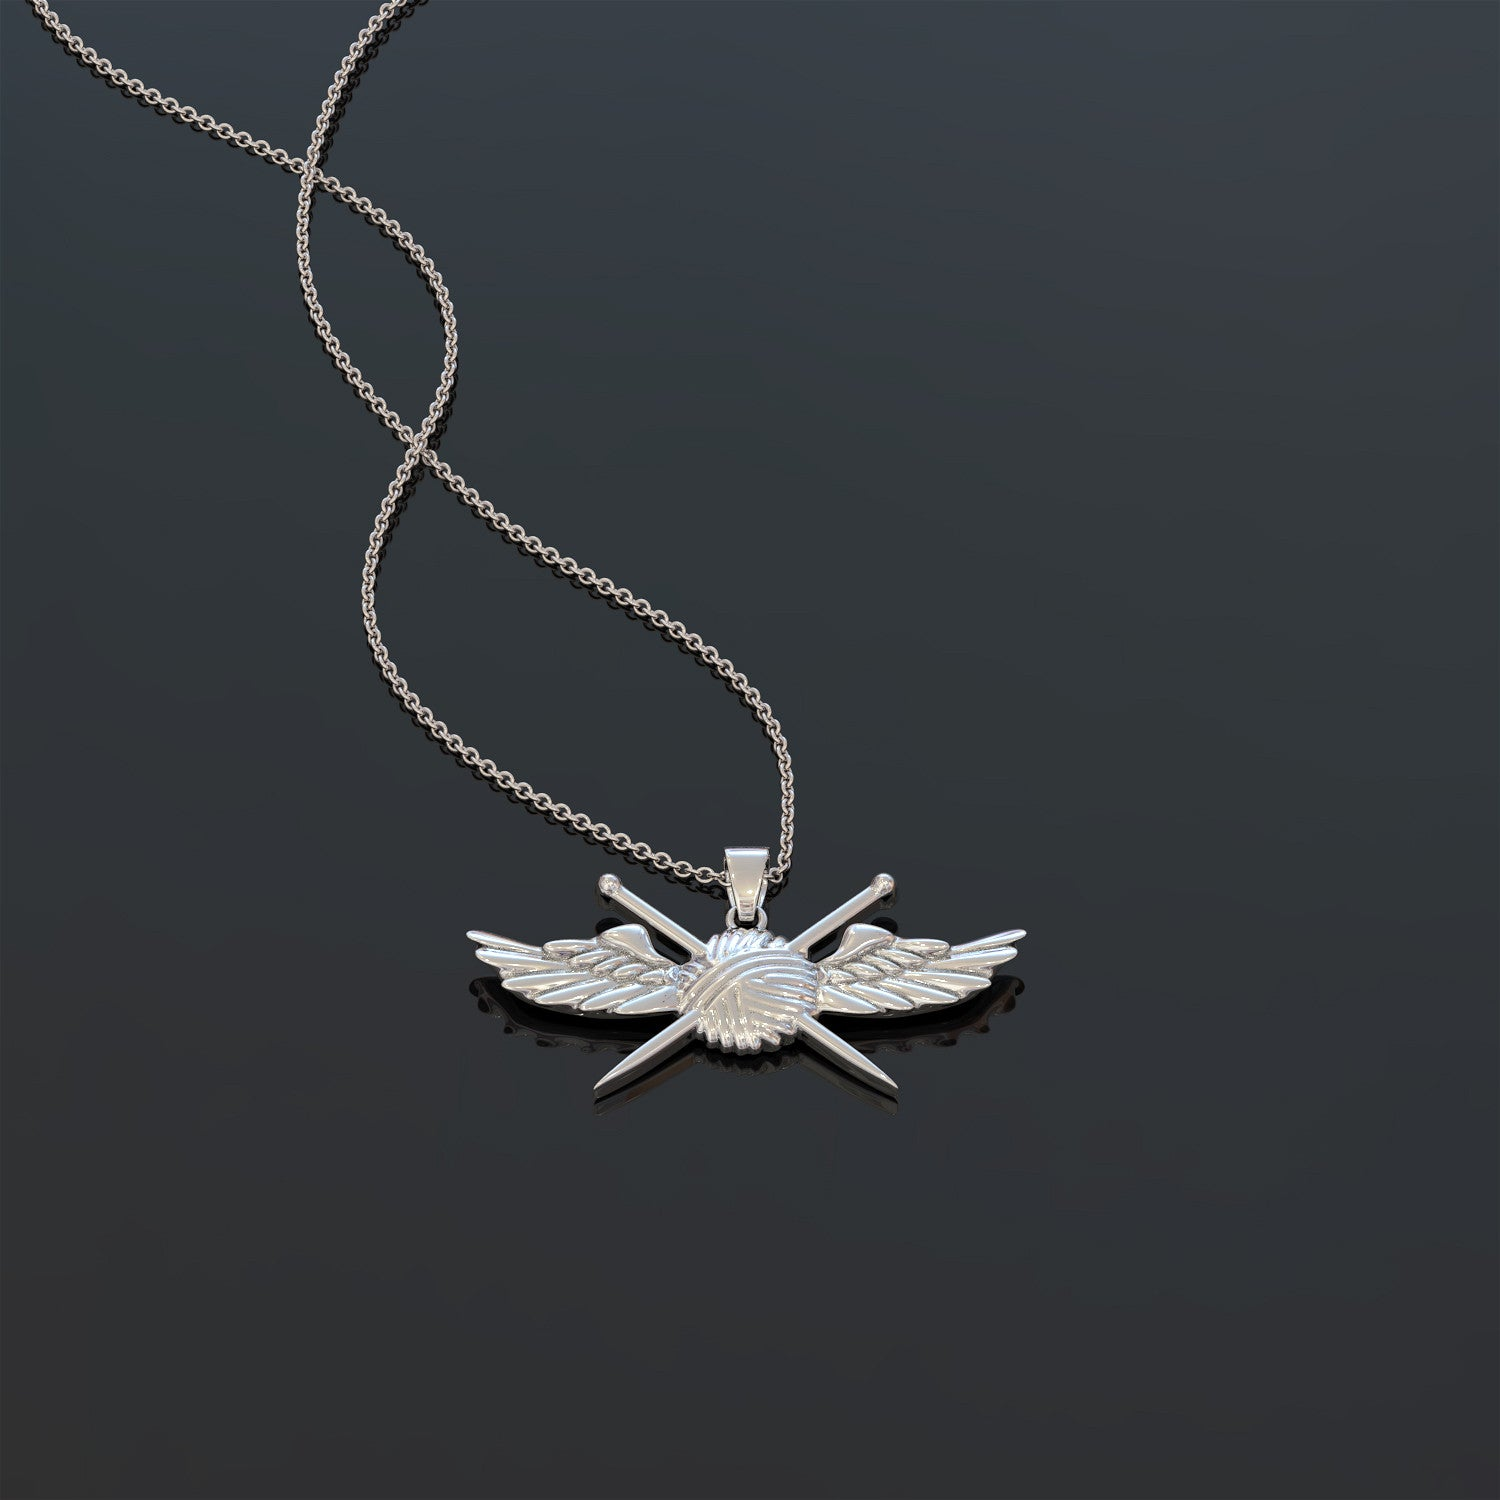 Knitting Angel Necklace